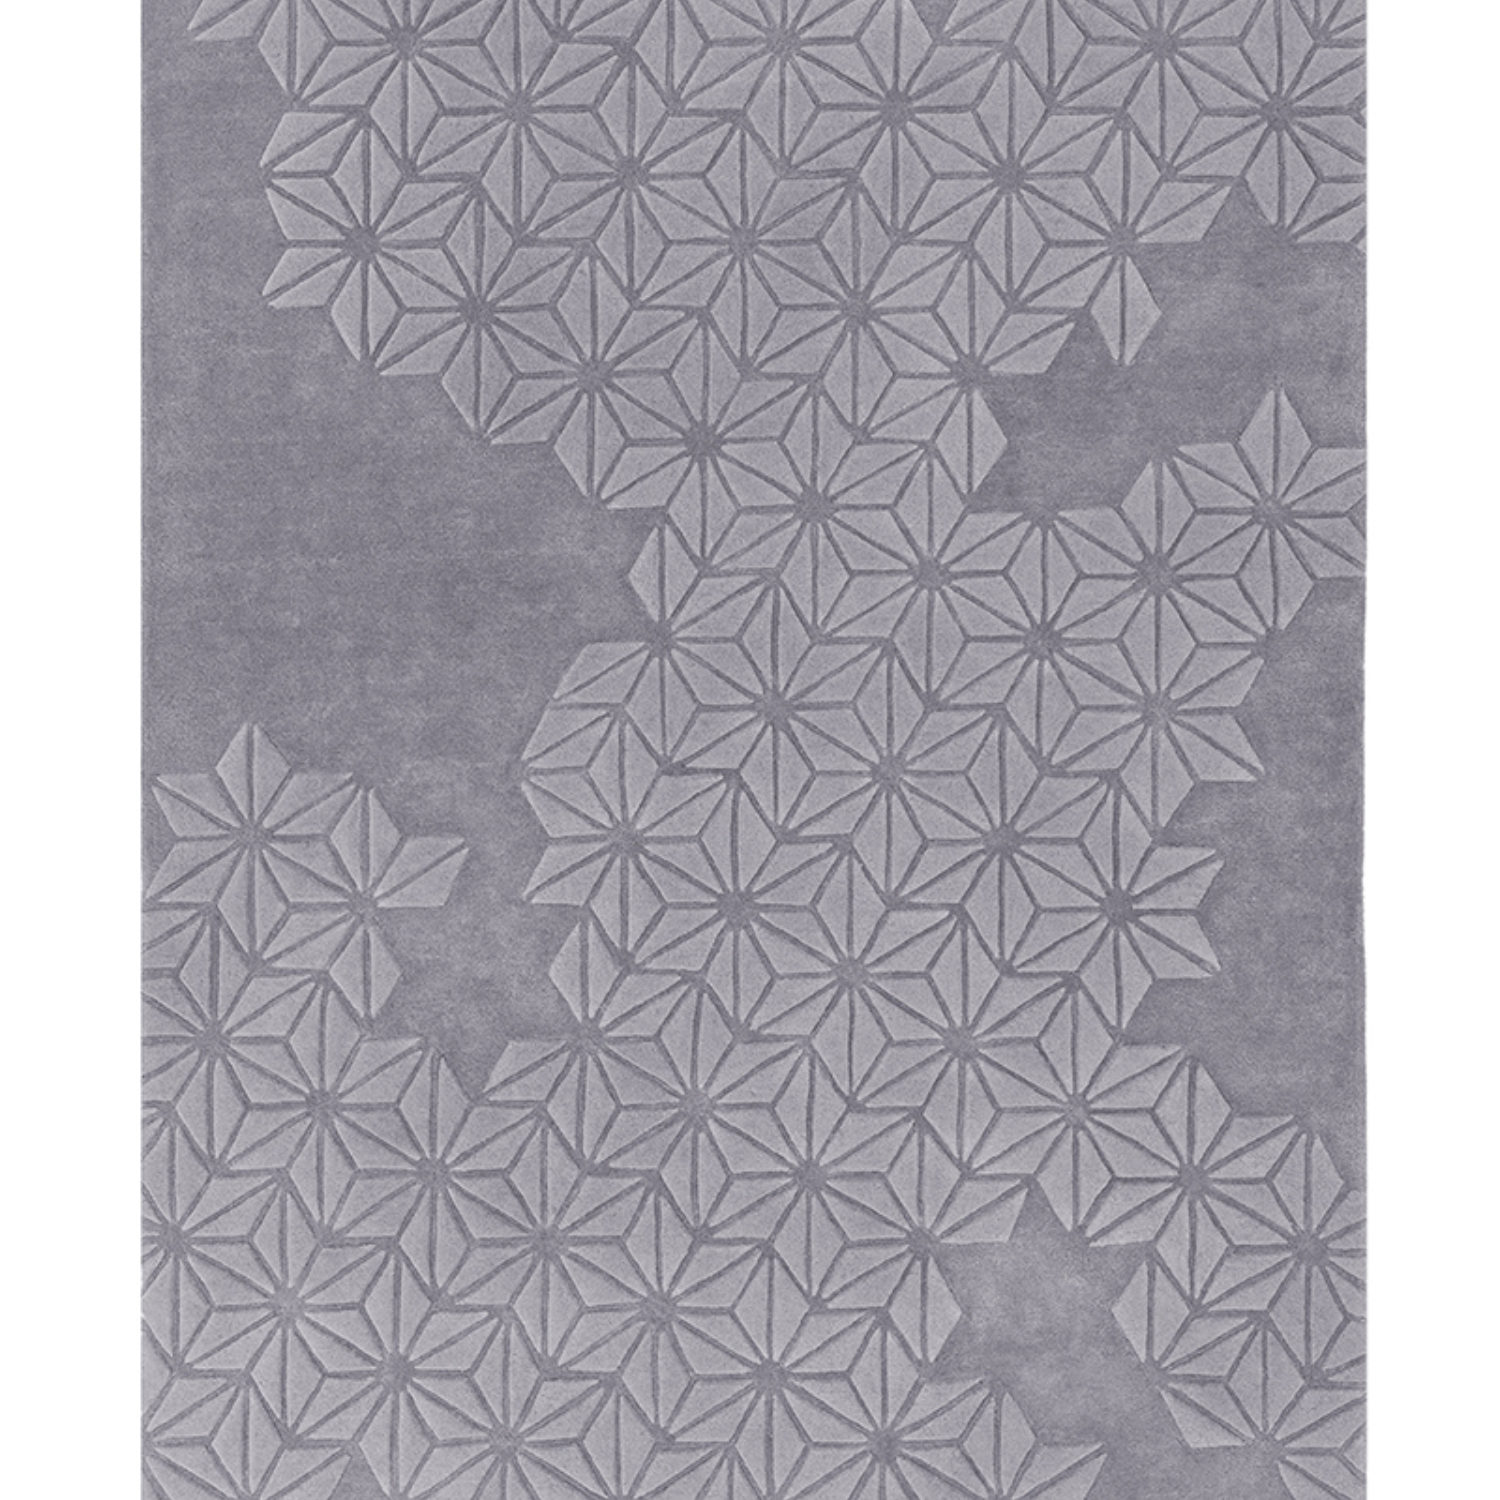 Hand tufted extra thick wool-rich rug with a hand carved star patterned